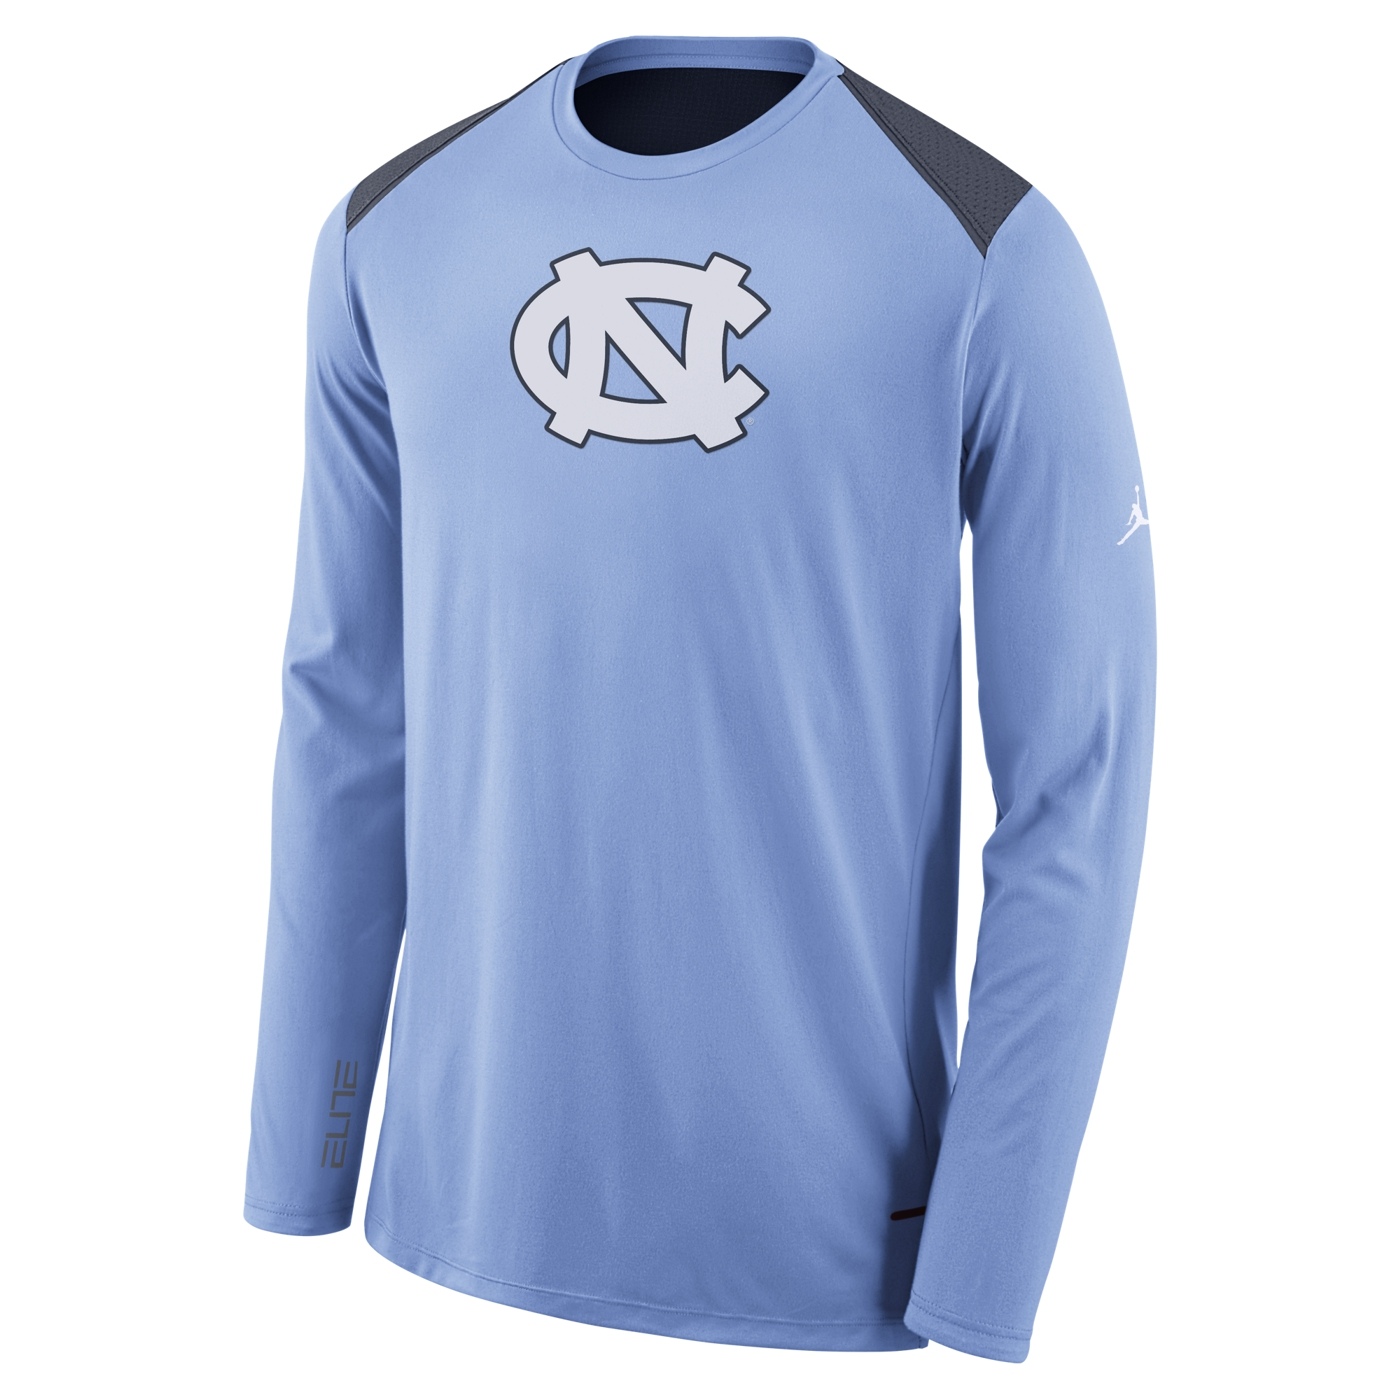 9b0e6ec478b1 Johnny T-shirt - North Carolina Tar Heels - Basketball - Nike Long Sleeve  Basketball Shooting Shirt (CB Navy) by Nike